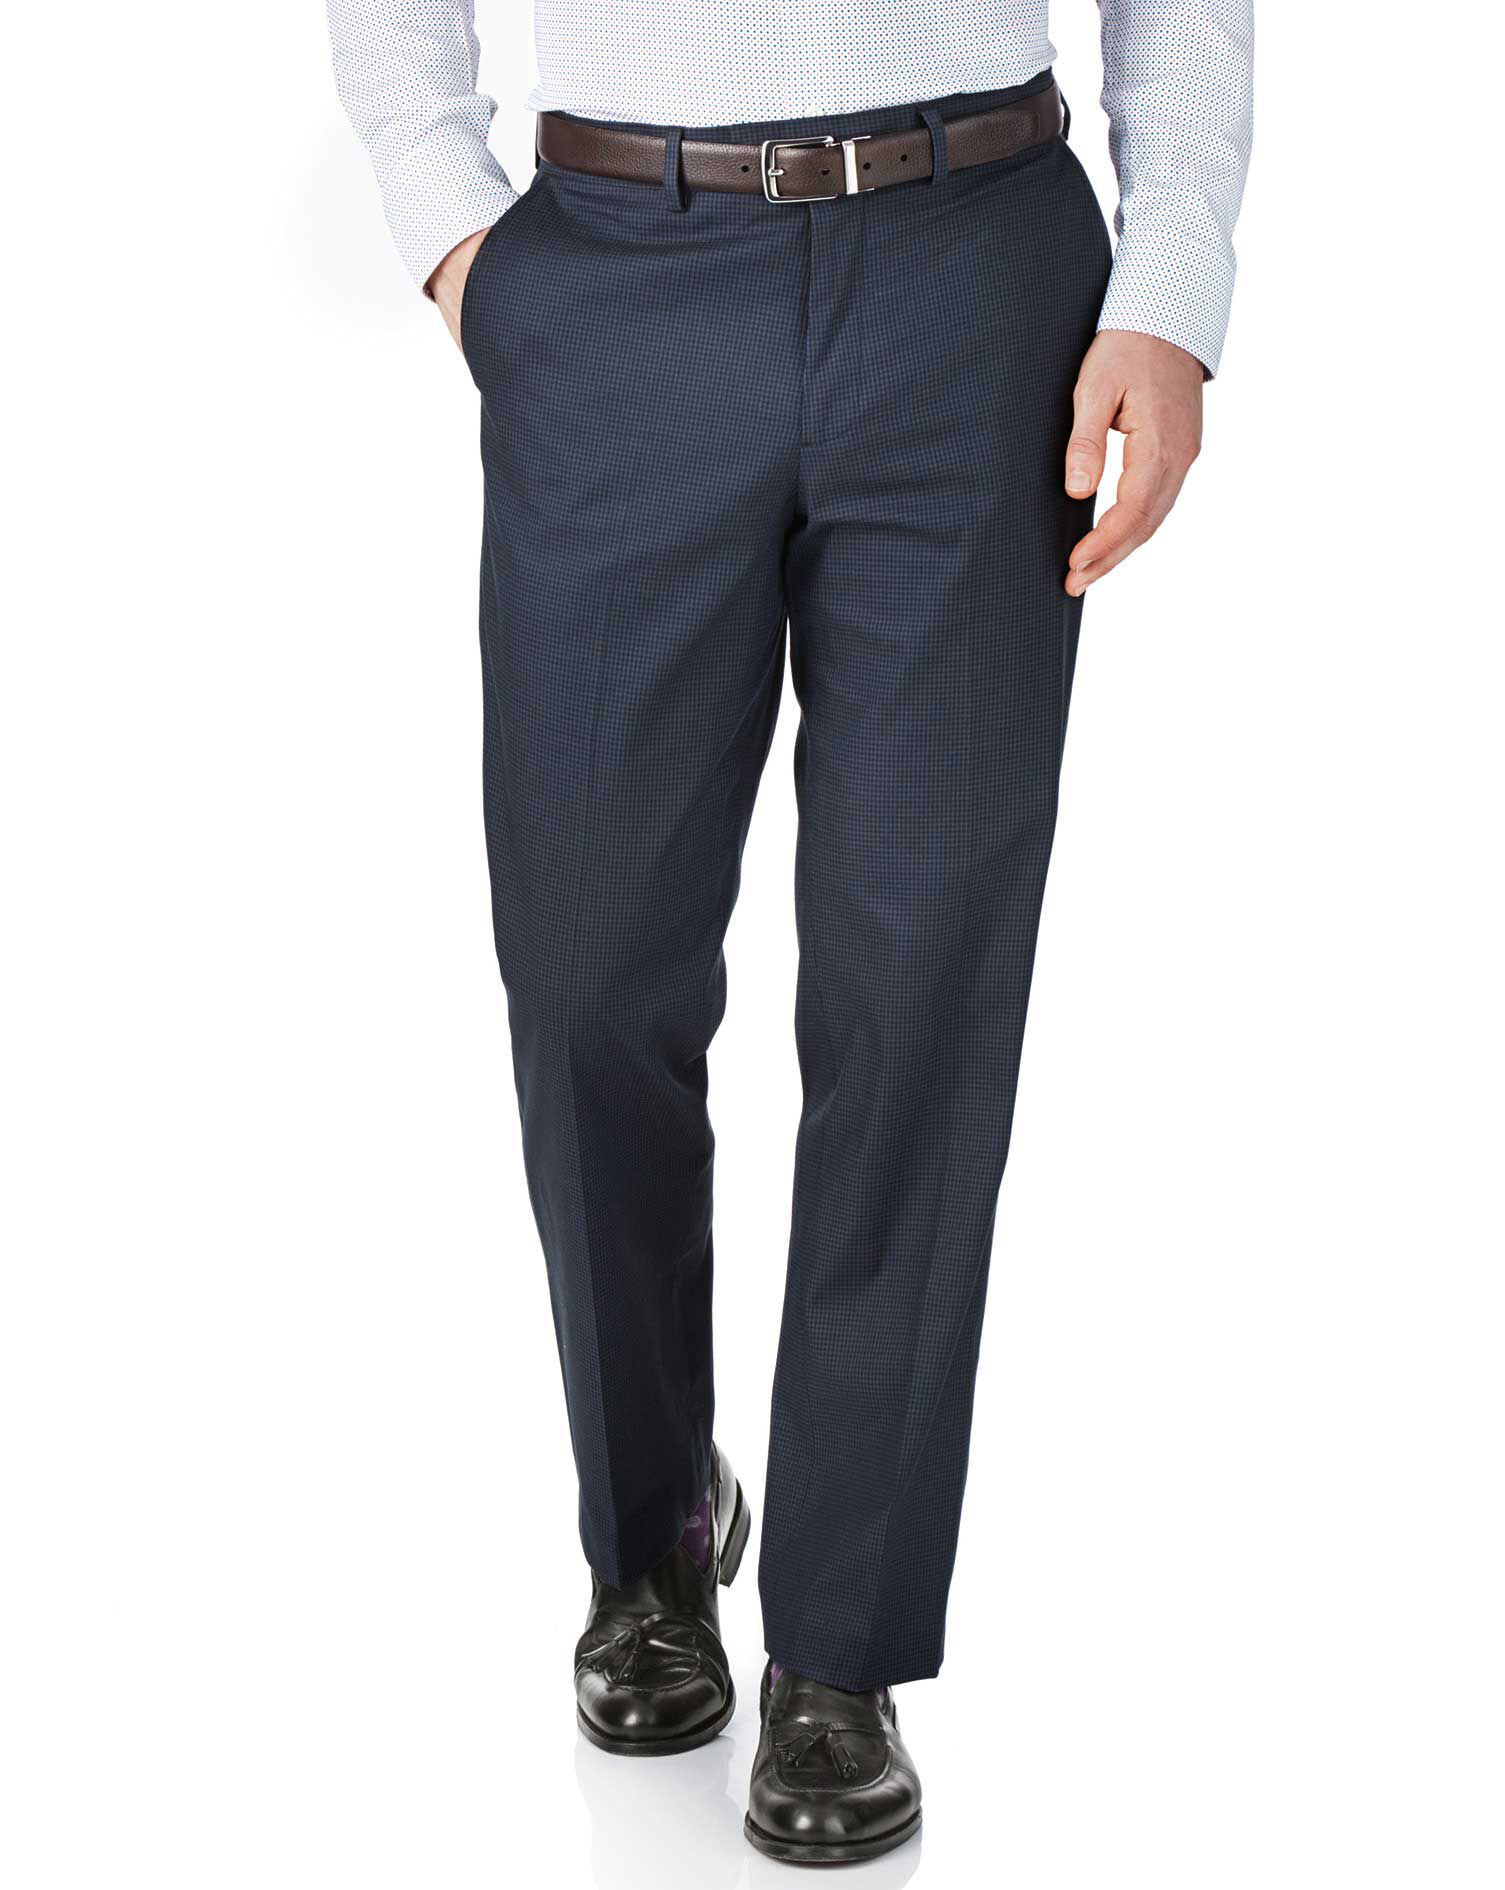 Navy and Blue Classic Fit Puppytooth Trousers Size W38 L32 by Charles Tyrwhitt